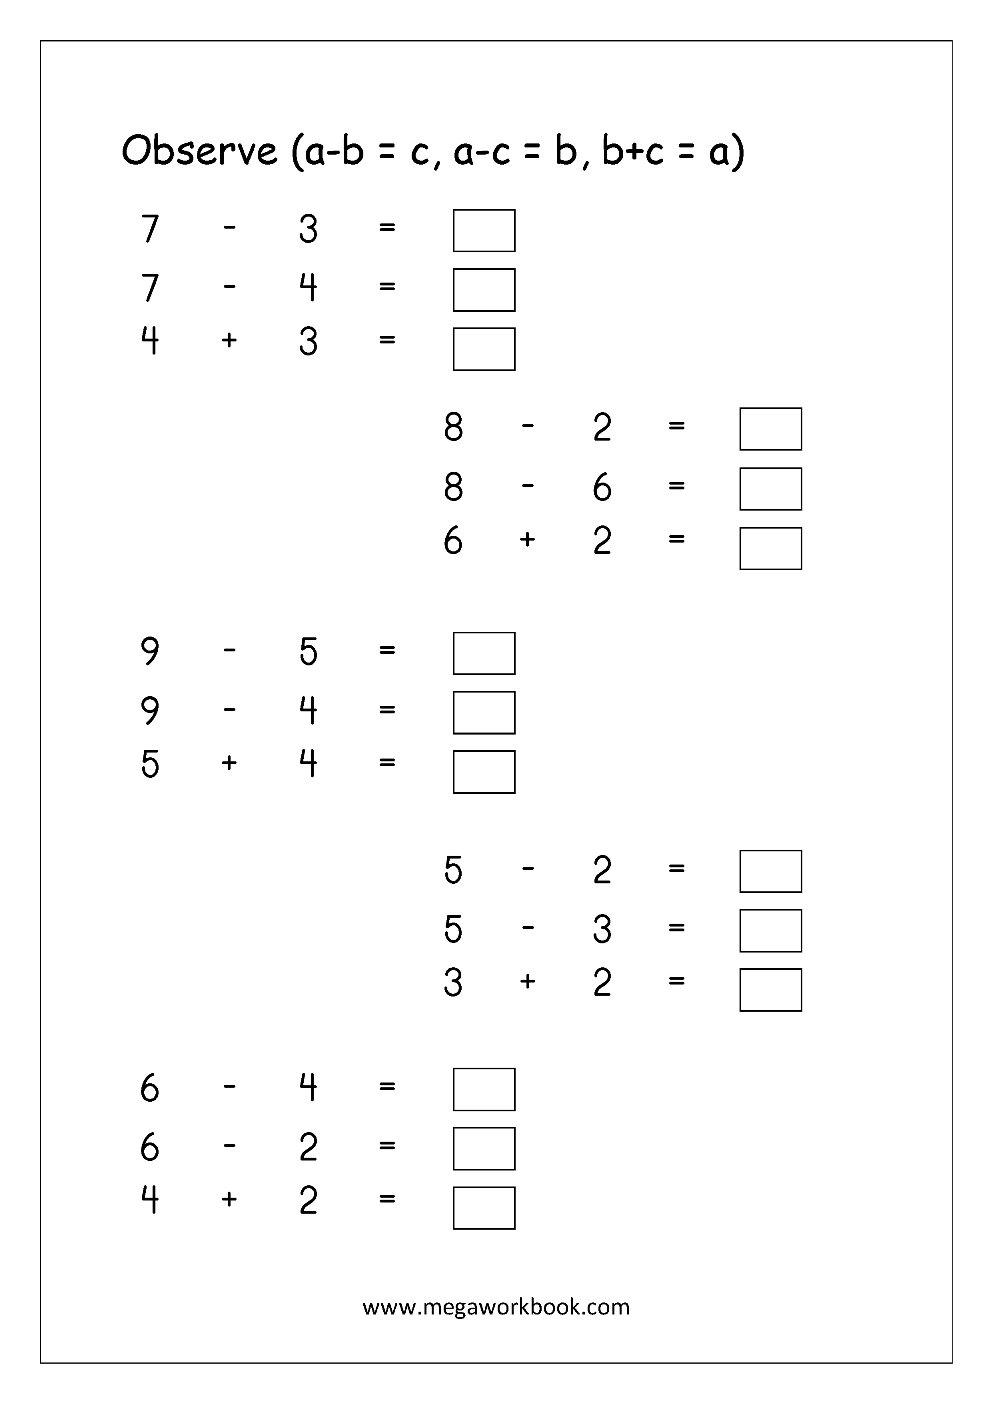 Free Math Worksheets - Subtraction - MegaWorkbook